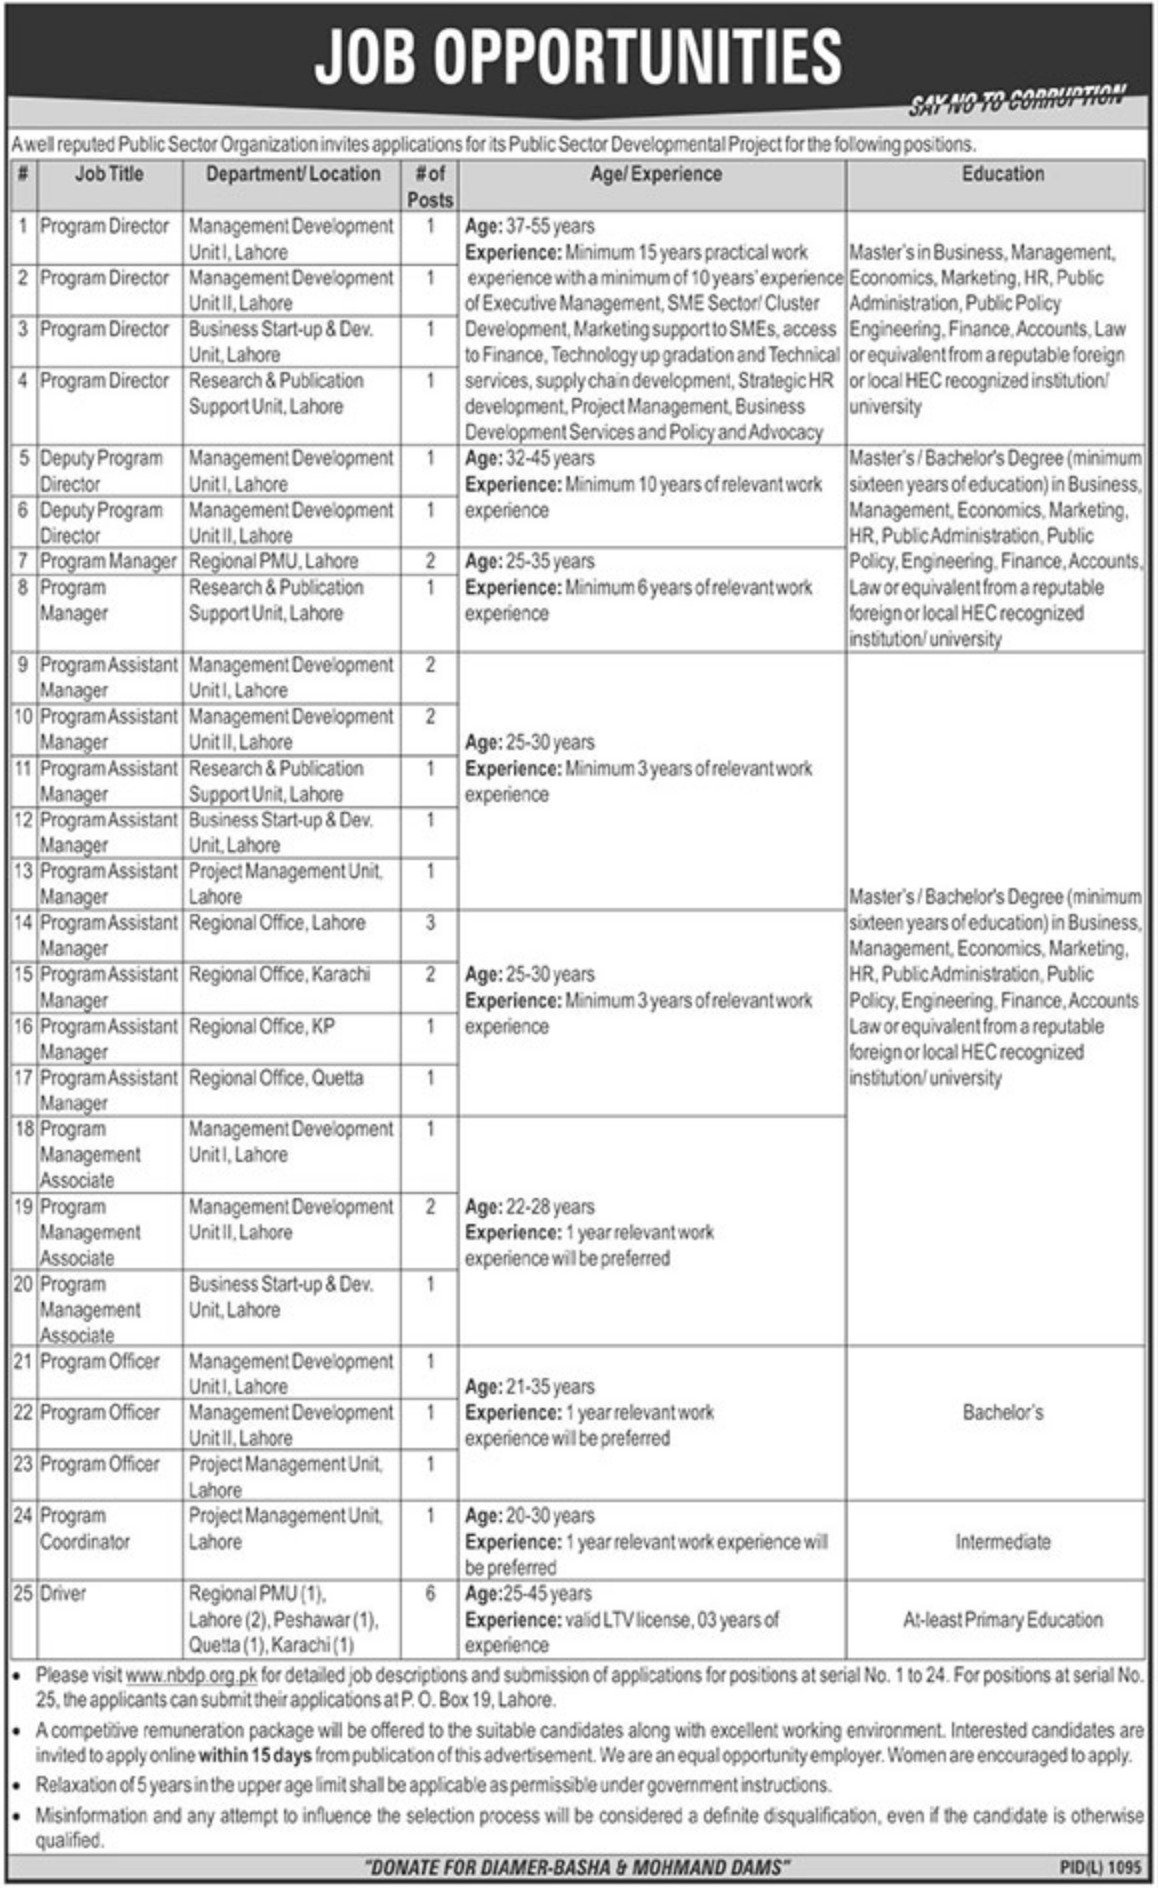 Public Sector Organization P.O.Box 19 Lahore Jobs 2018